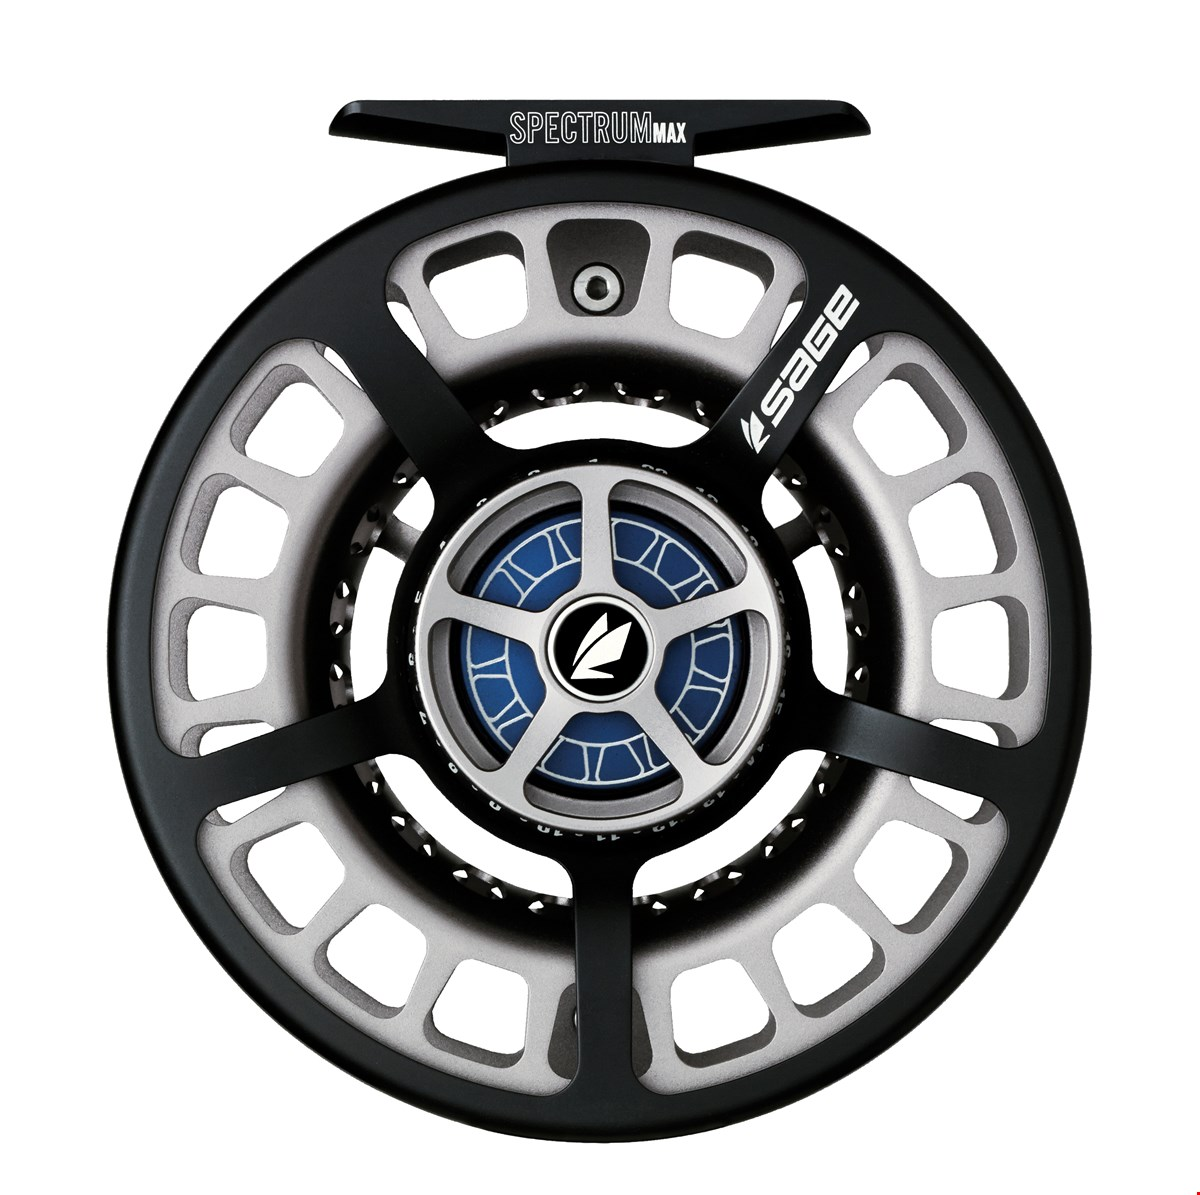 sage s spectrum fly reels cover all fly fishing applications the venturing angler. Black Bedroom Furniture Sets. Home Design Ideas